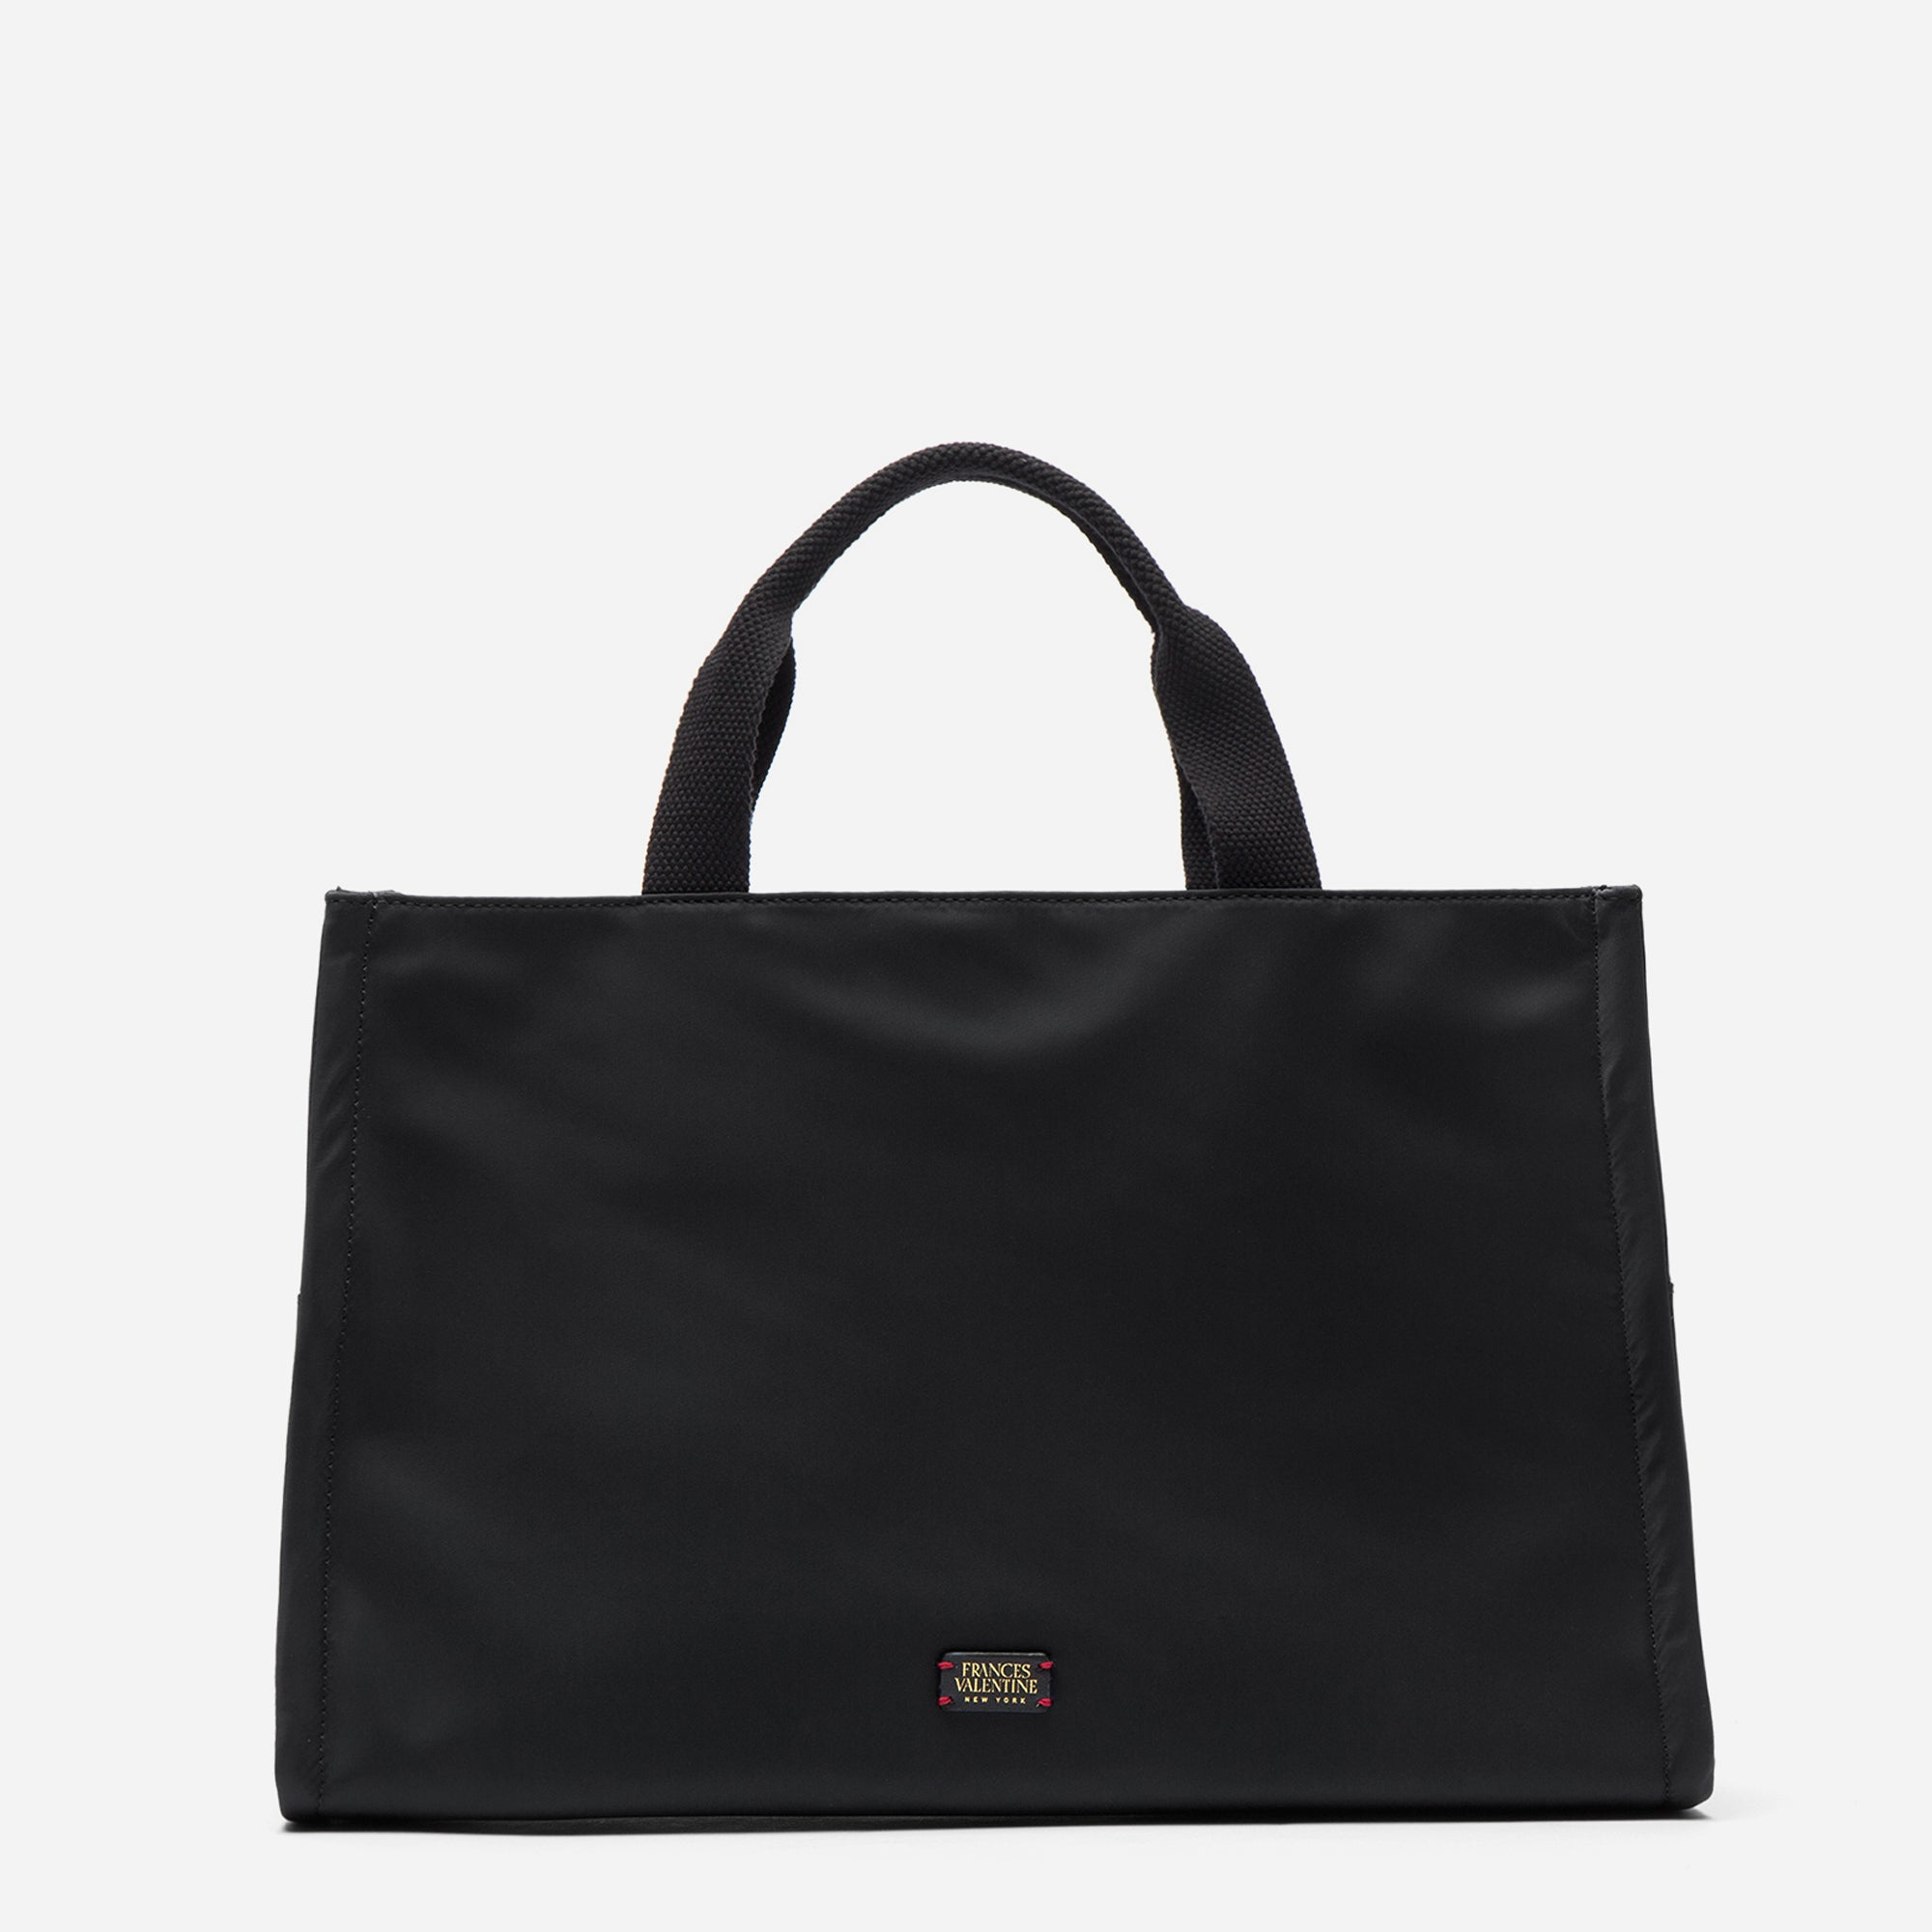 Limited Edition Kate Top Handle Tote Black